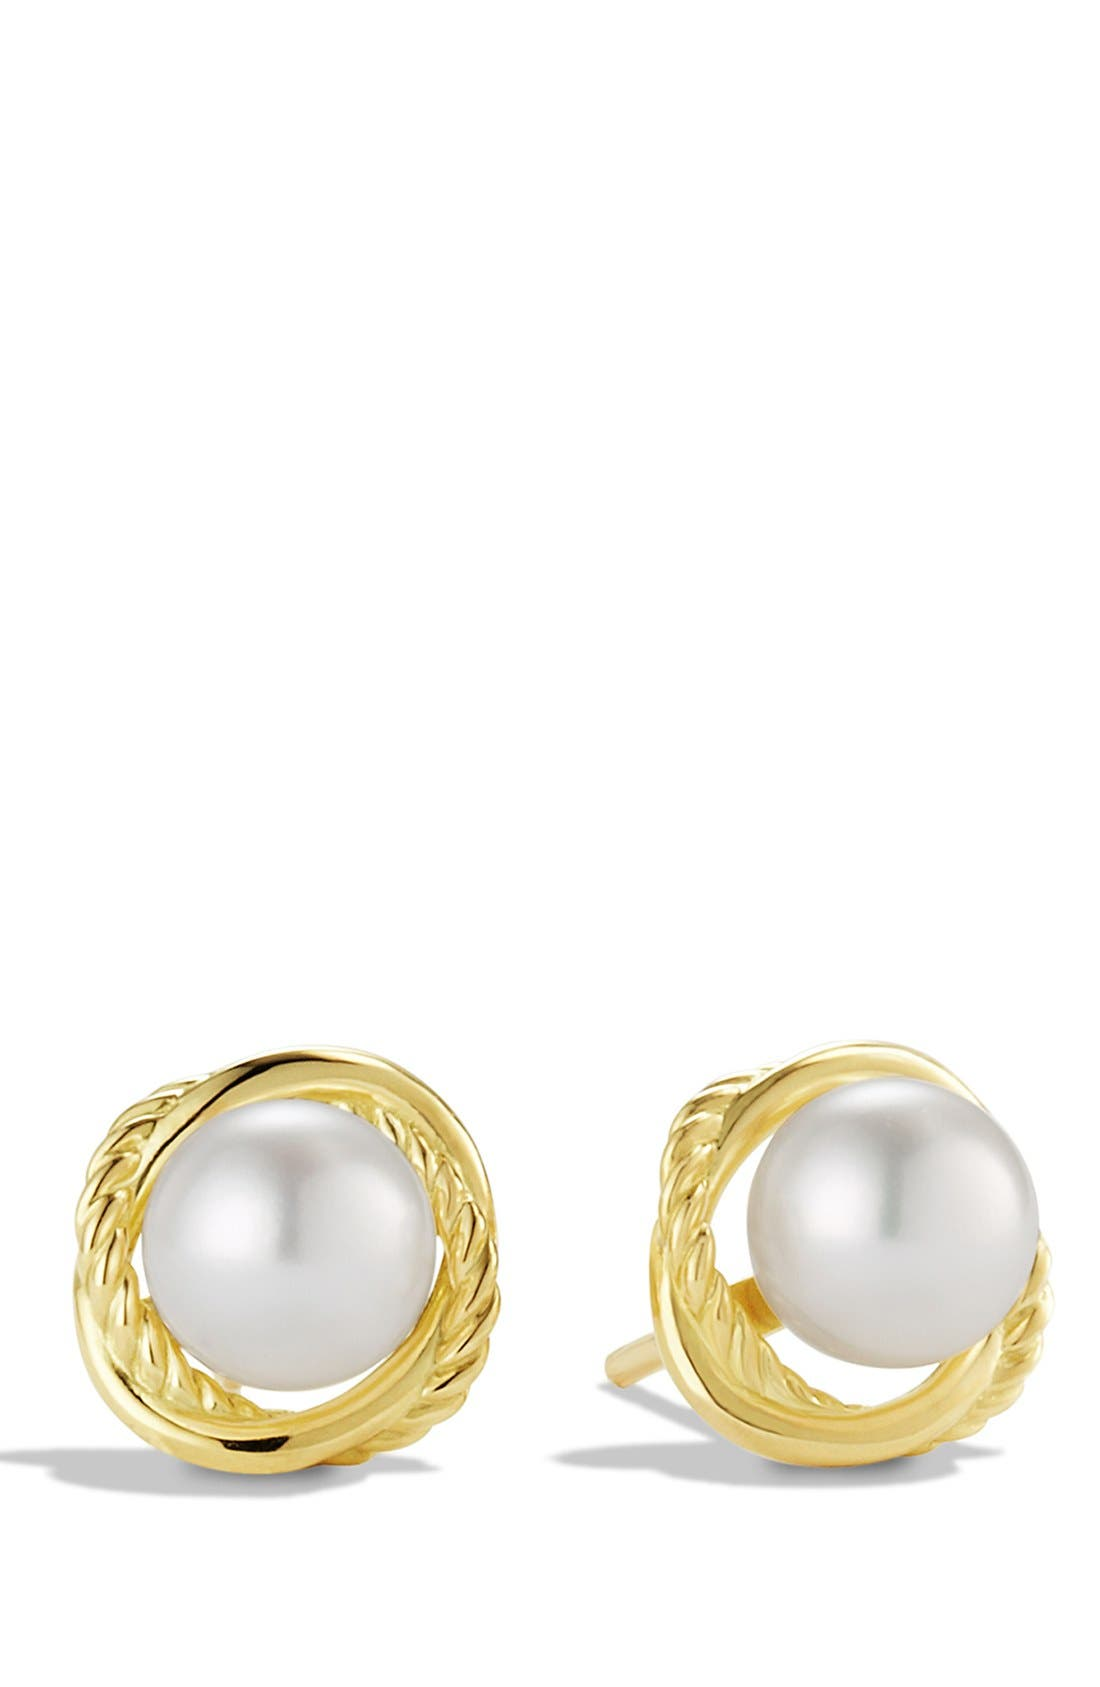 'Infinity' Earrings with Pearls in Gold,                         Main,                         color, 101